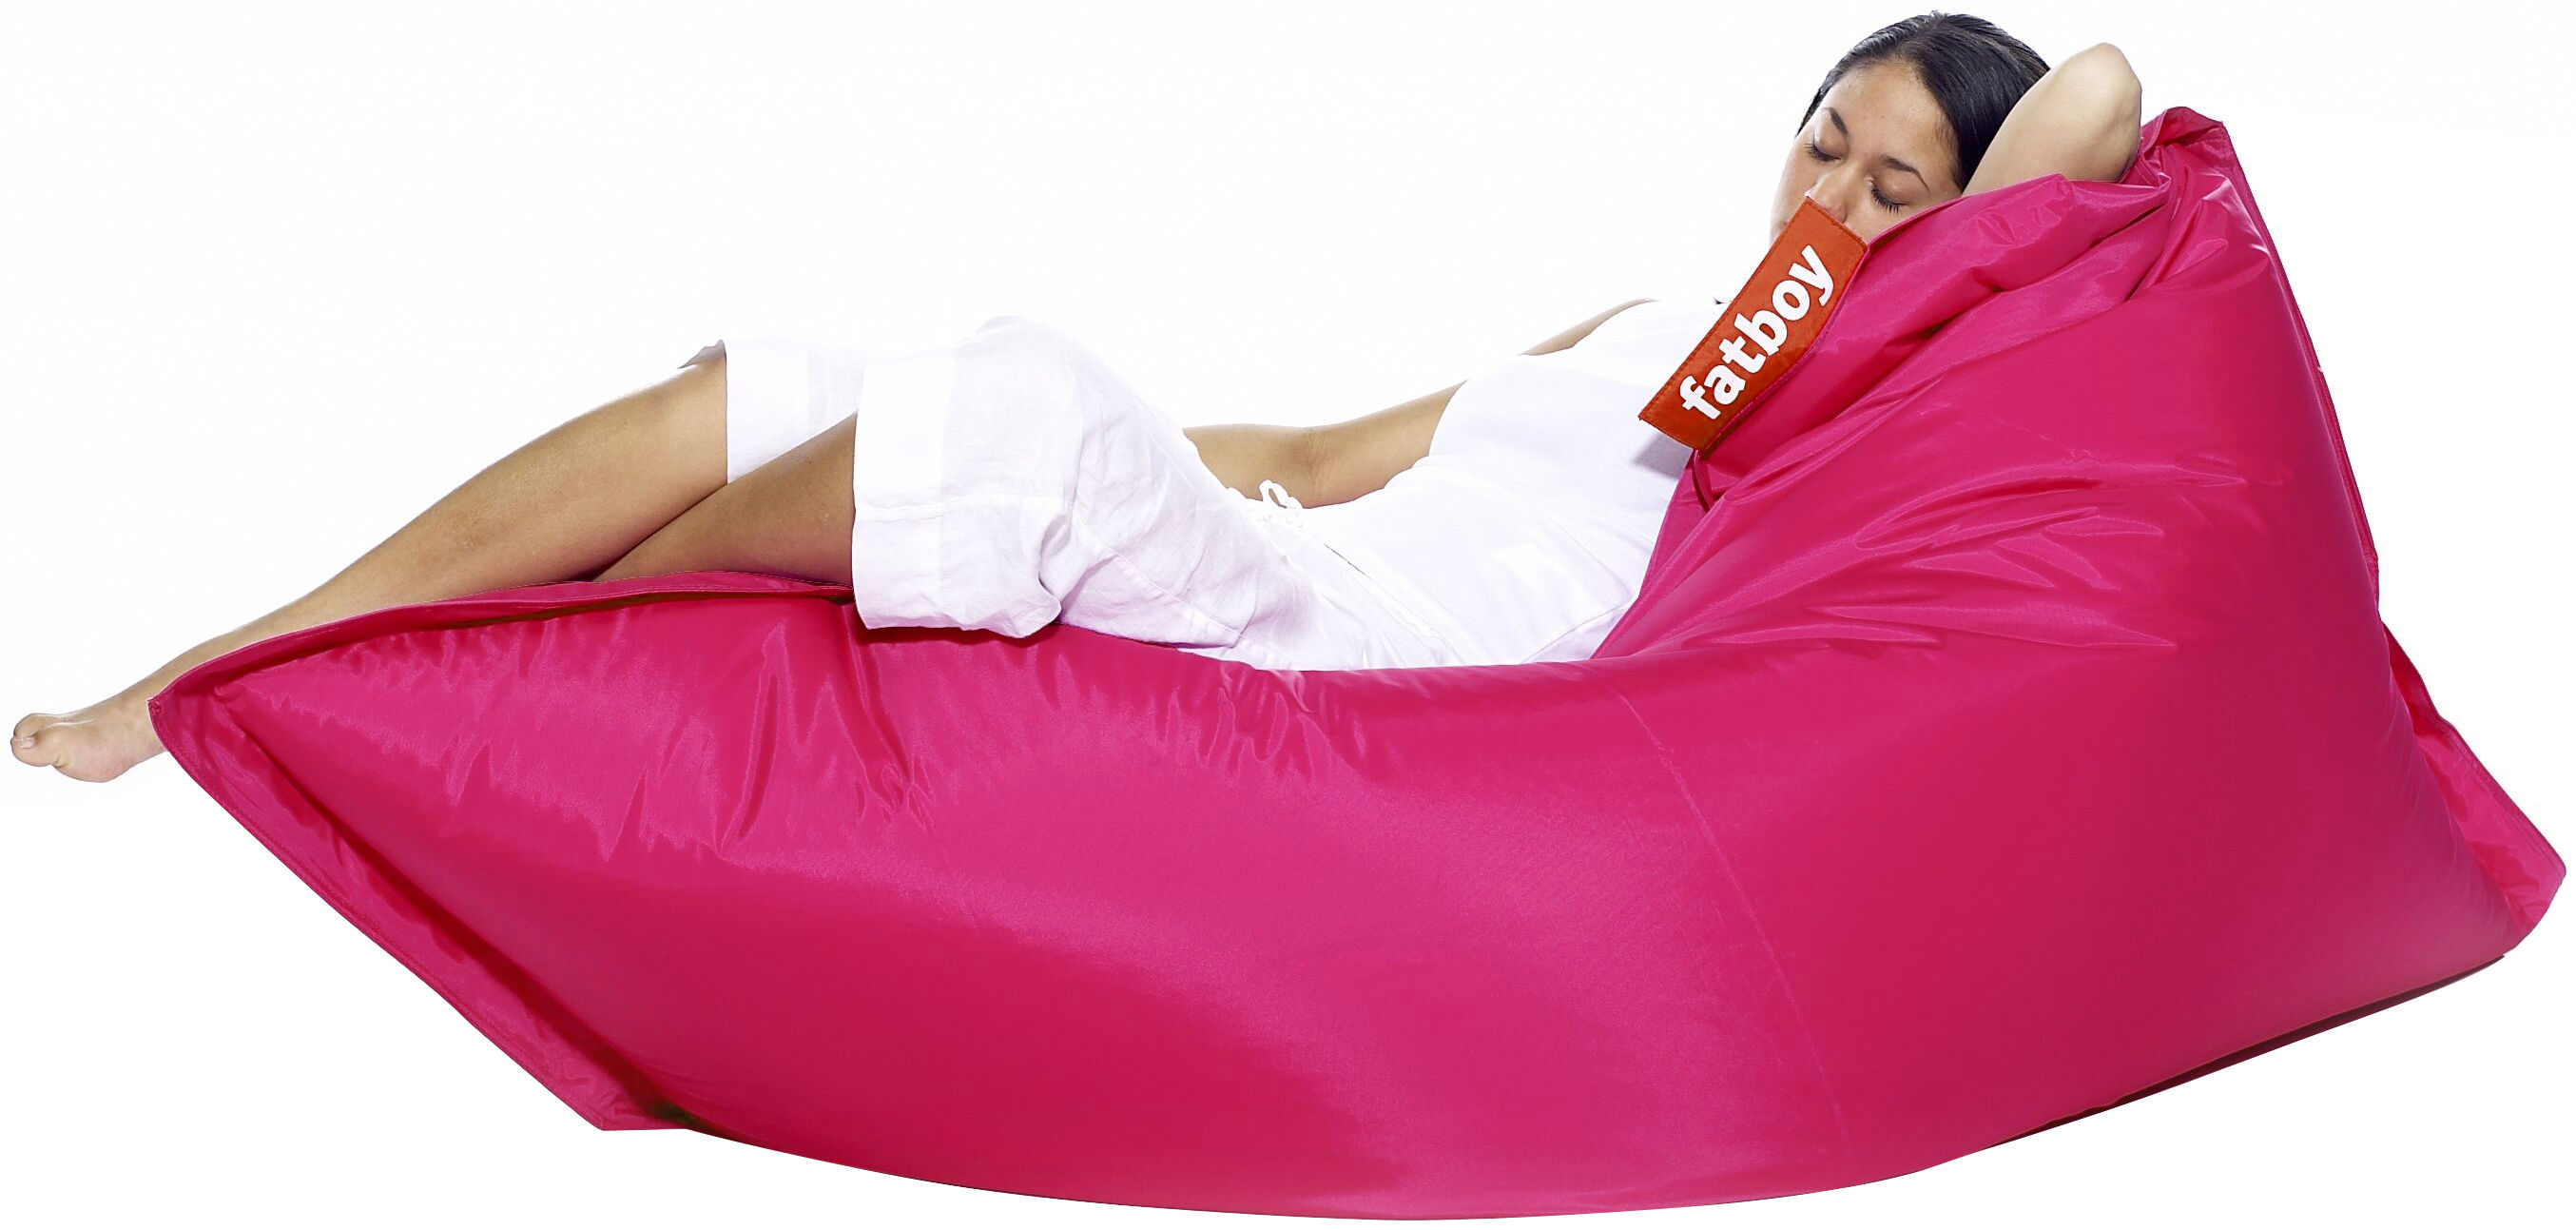 Furniture - Poufs & Floor Cushions - The Original Pouf by Fatboy - Pink - Nylon, Polystyren balls